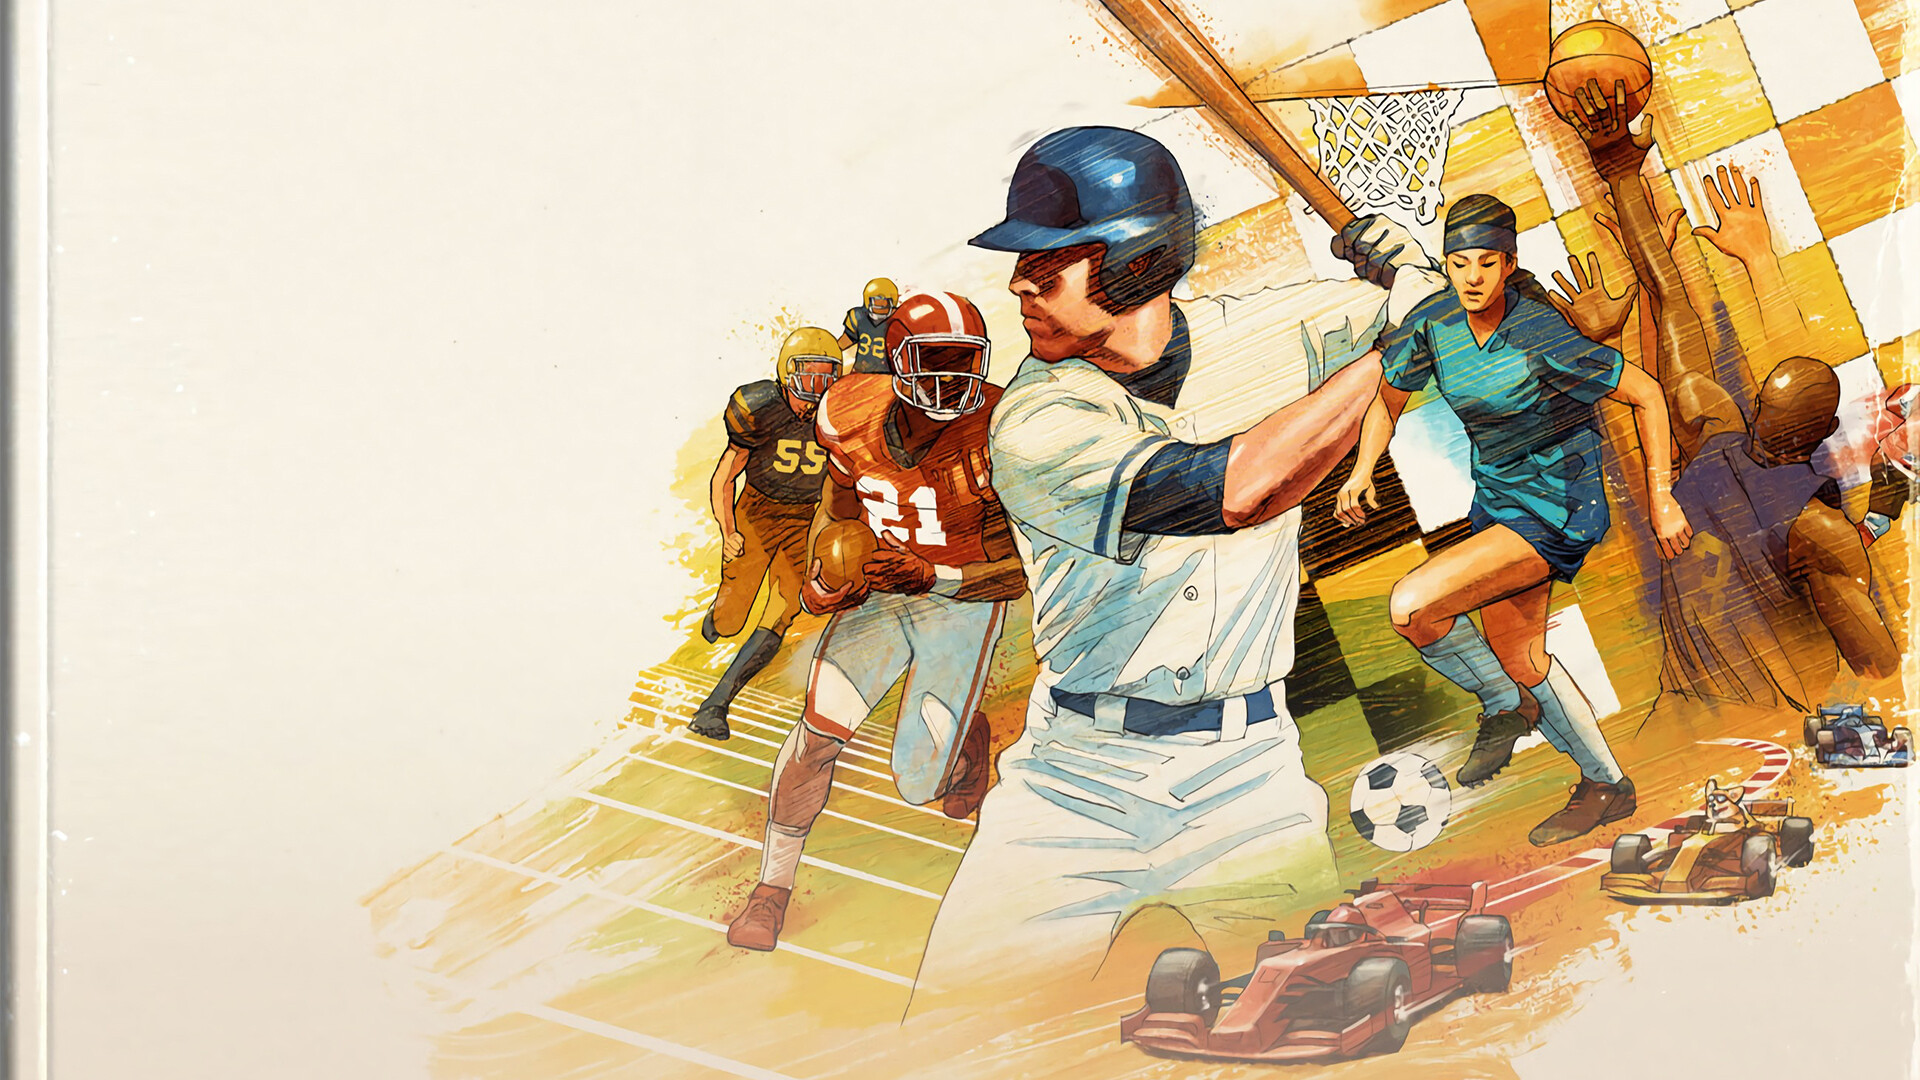 Steam Summer Sale Sports Racing free image